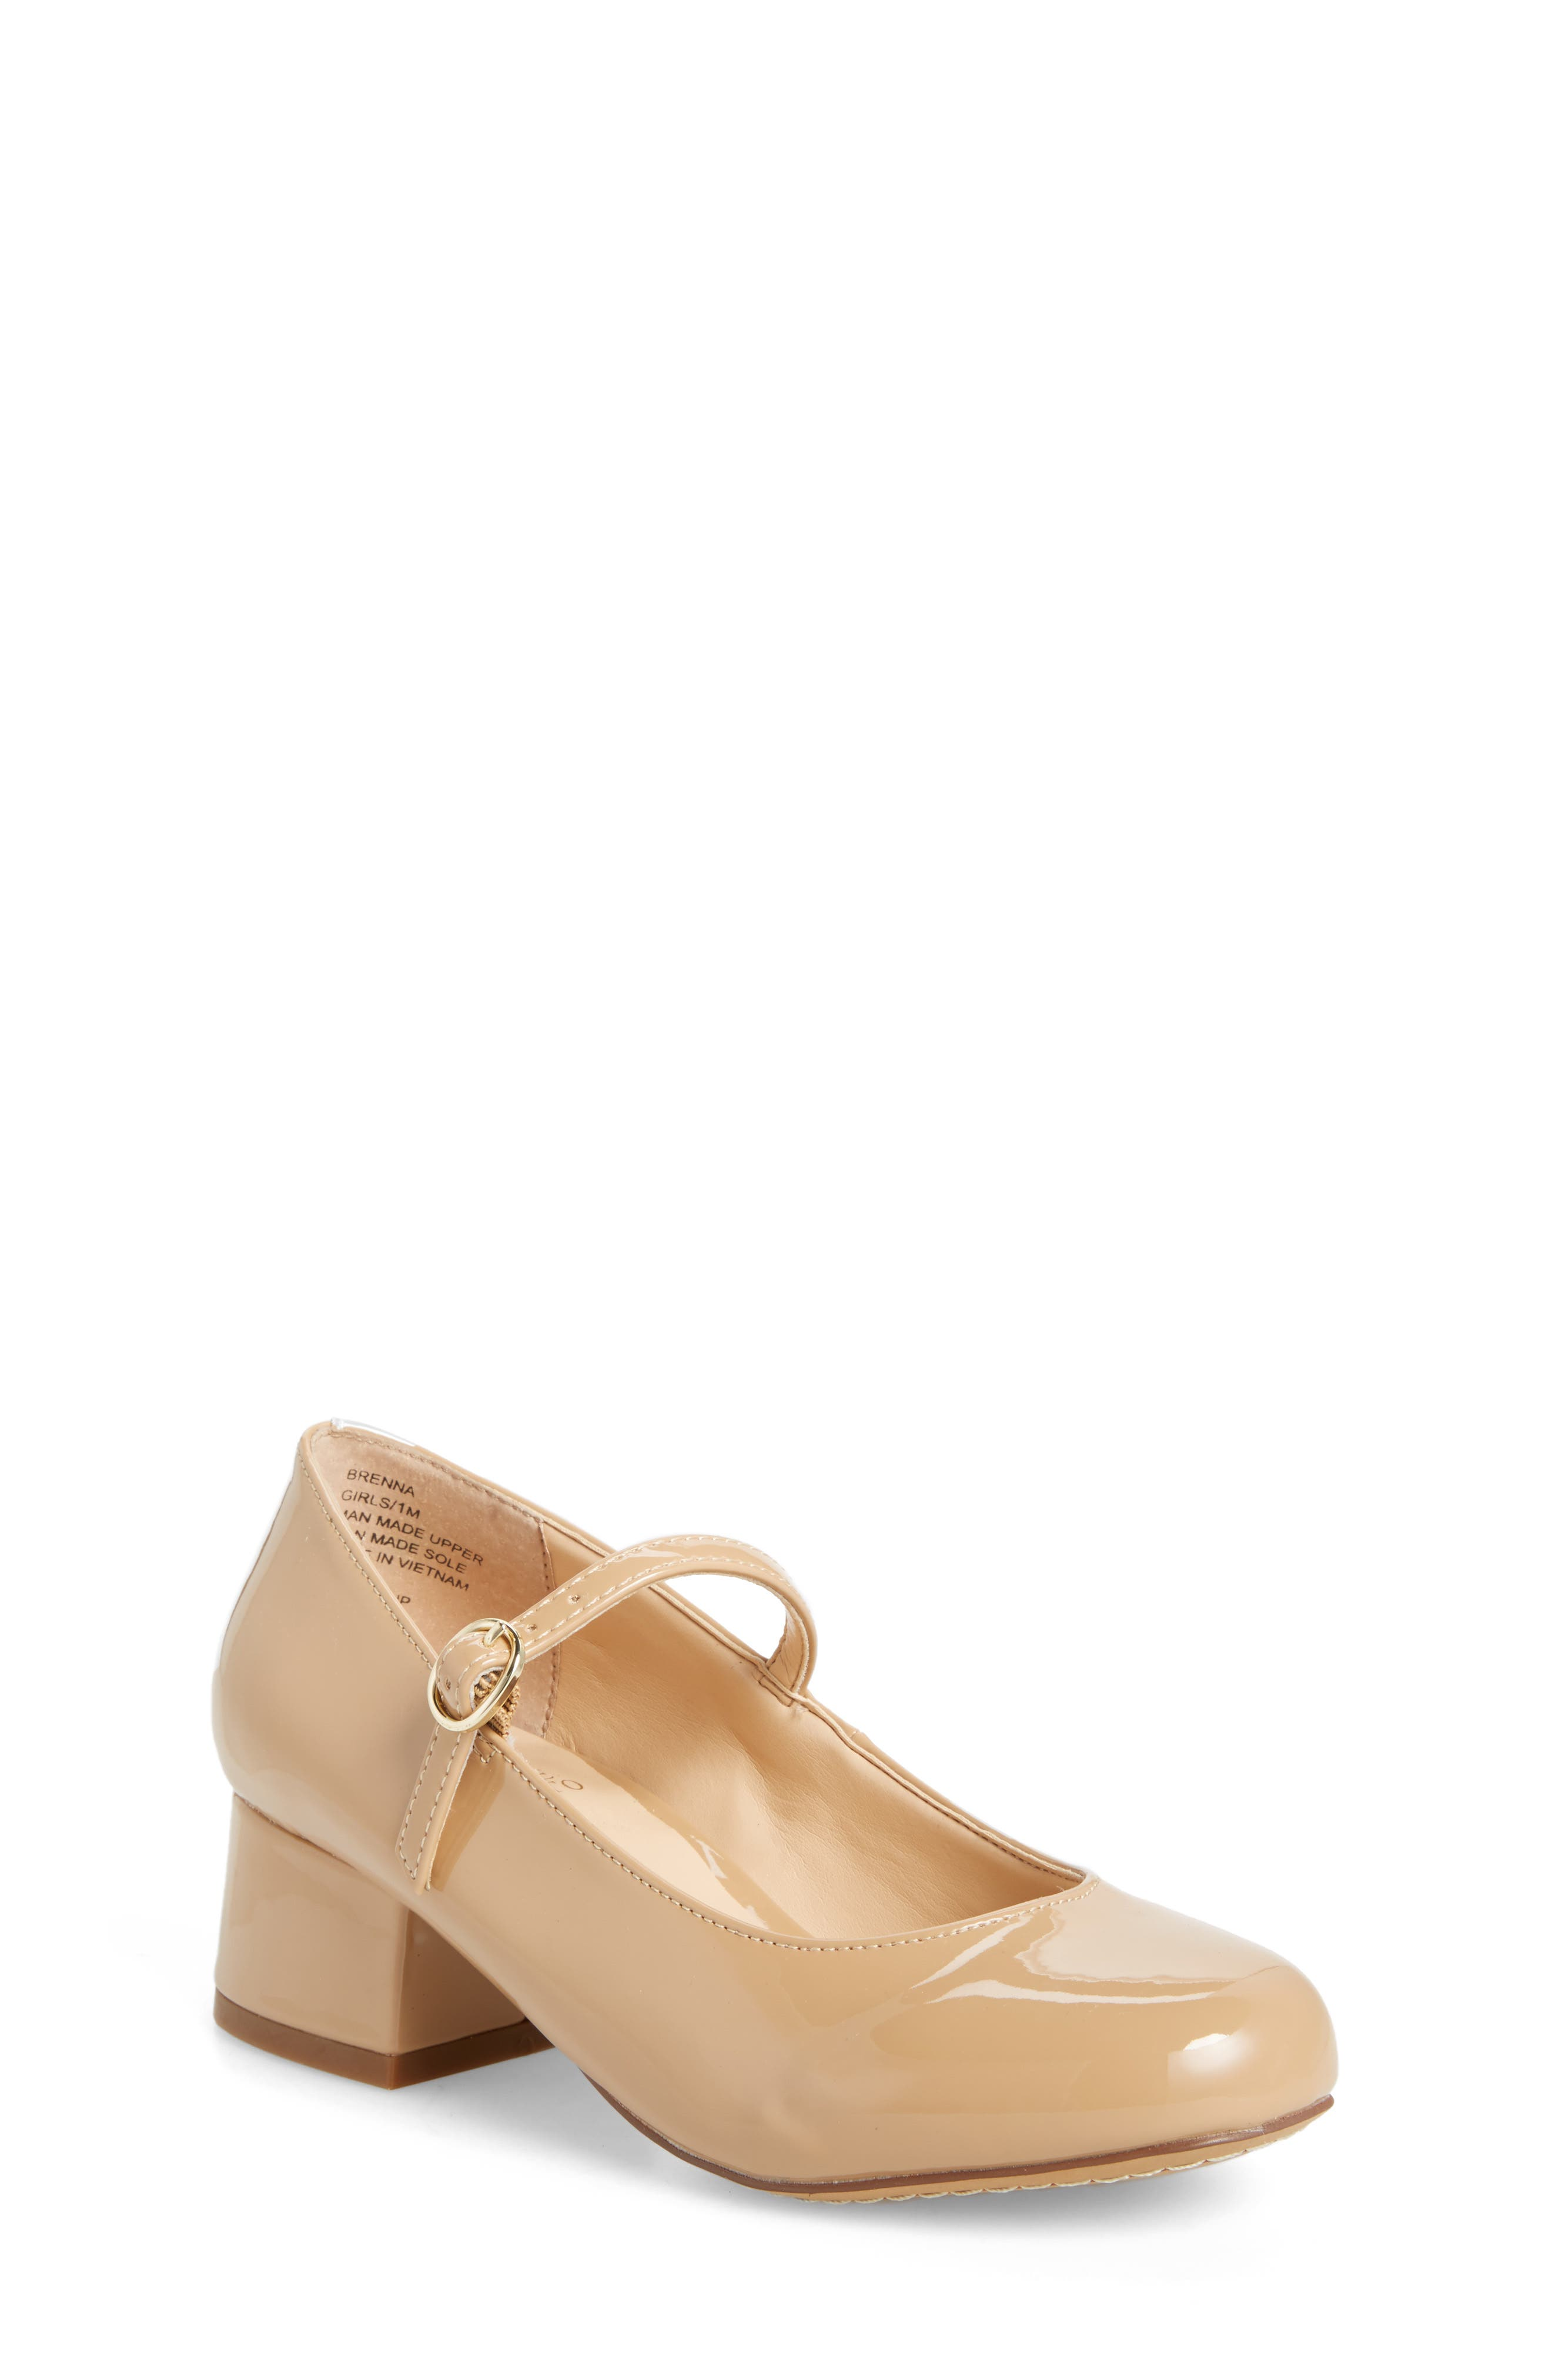 Brenna Mary Jane Pump,                         Main,                         color, NUDE PATENT